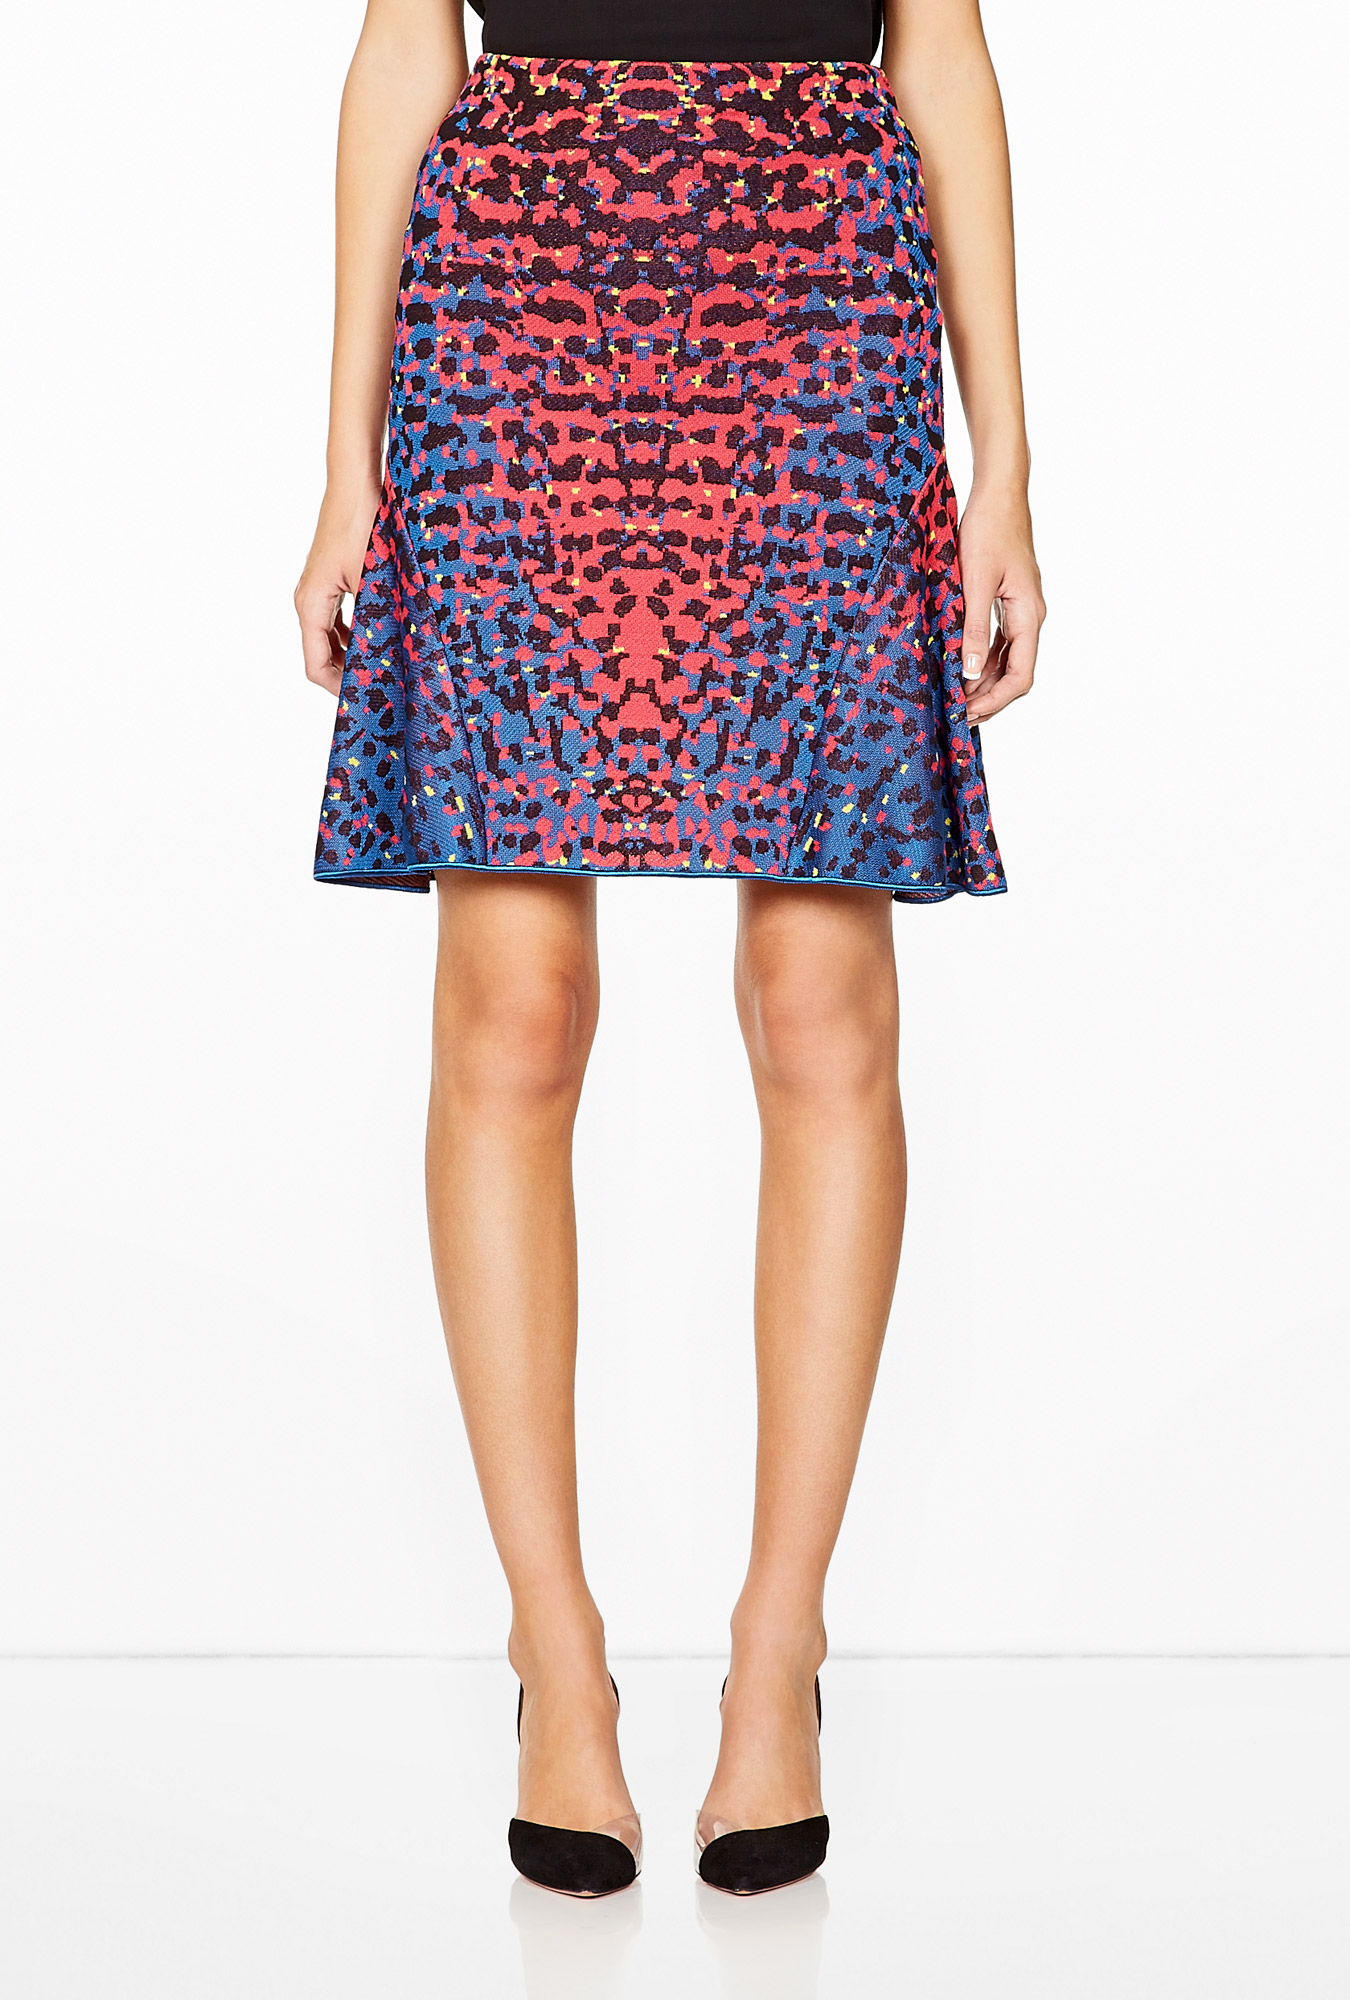 Fluro Lizard Print Skirt by M Missoni